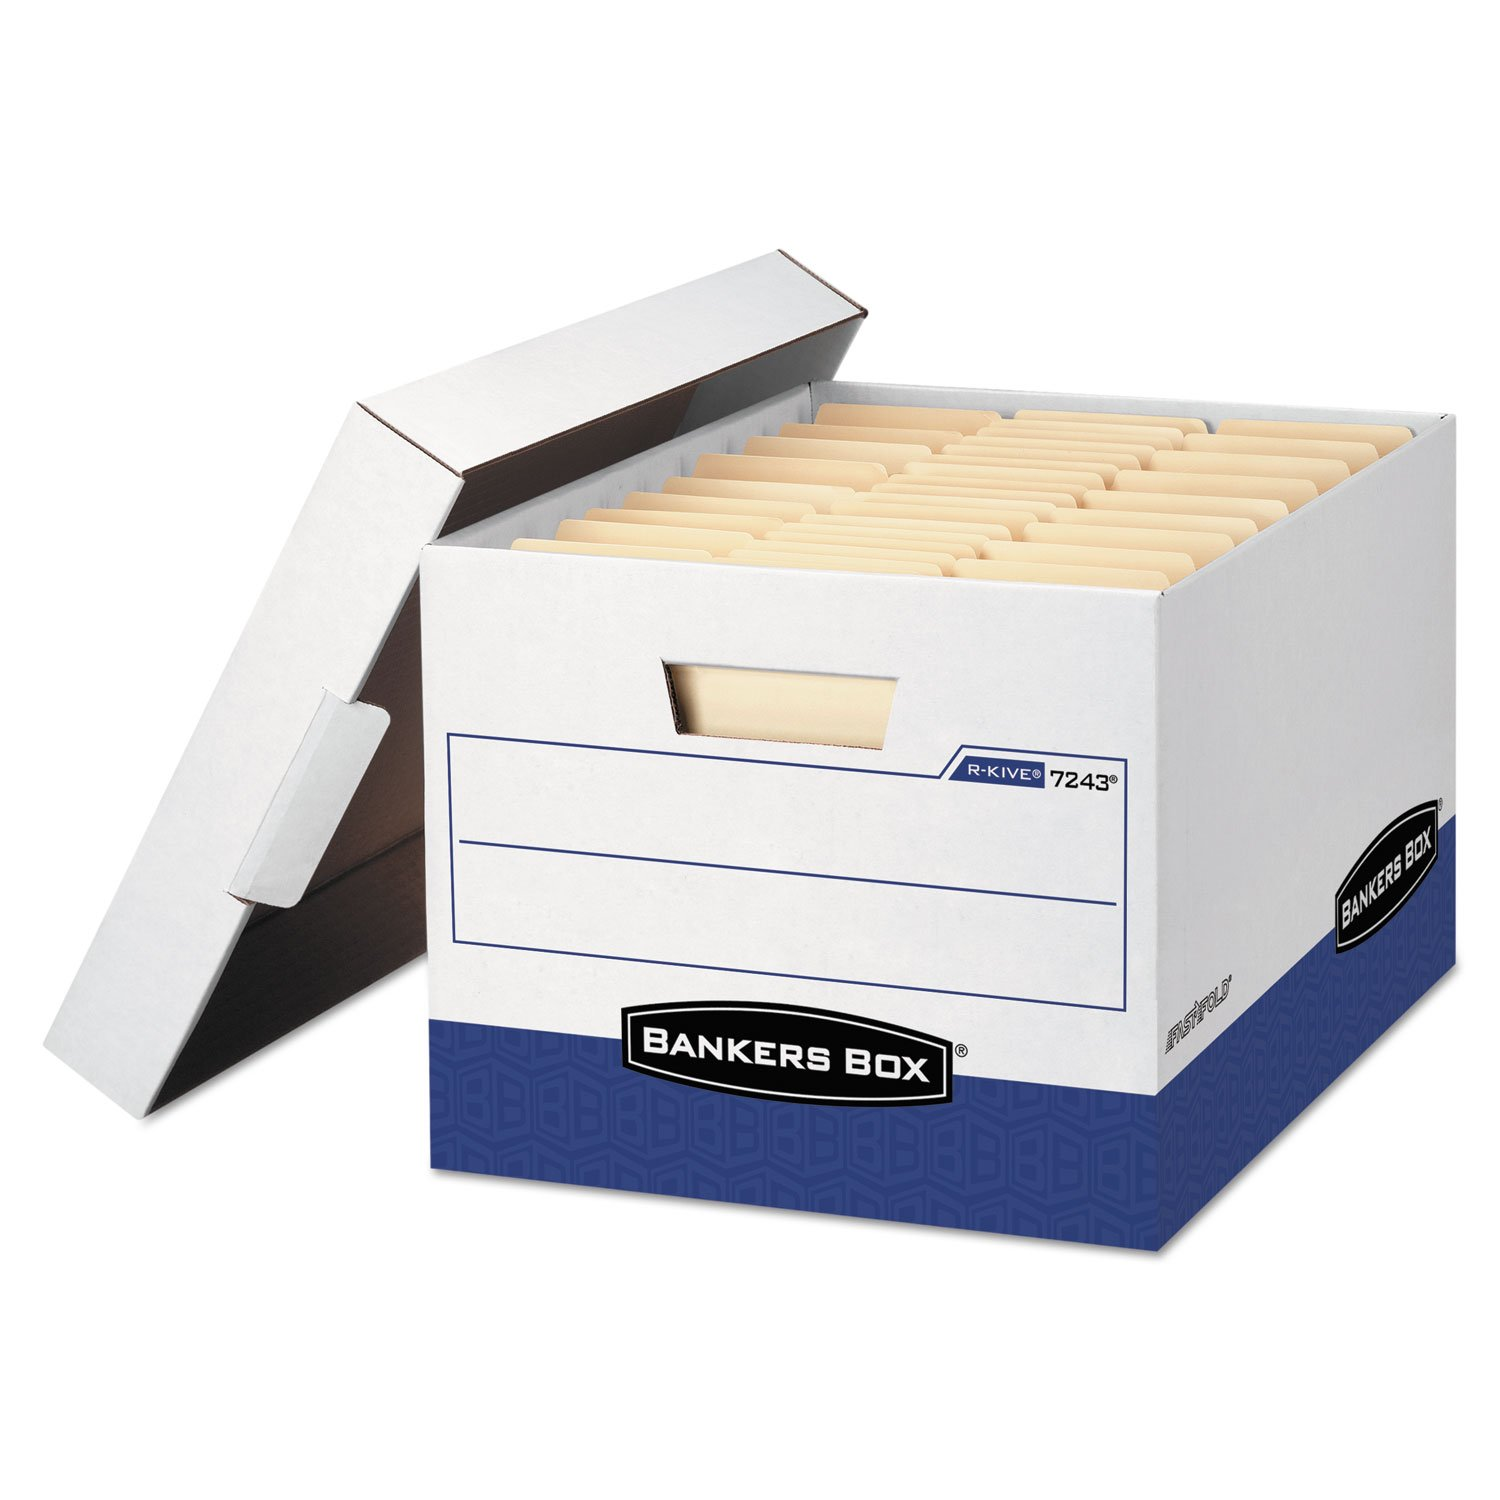 FEL07243 - Bankers Box R-Kive - Letter/Legal, White/Blue - TAA Compliant